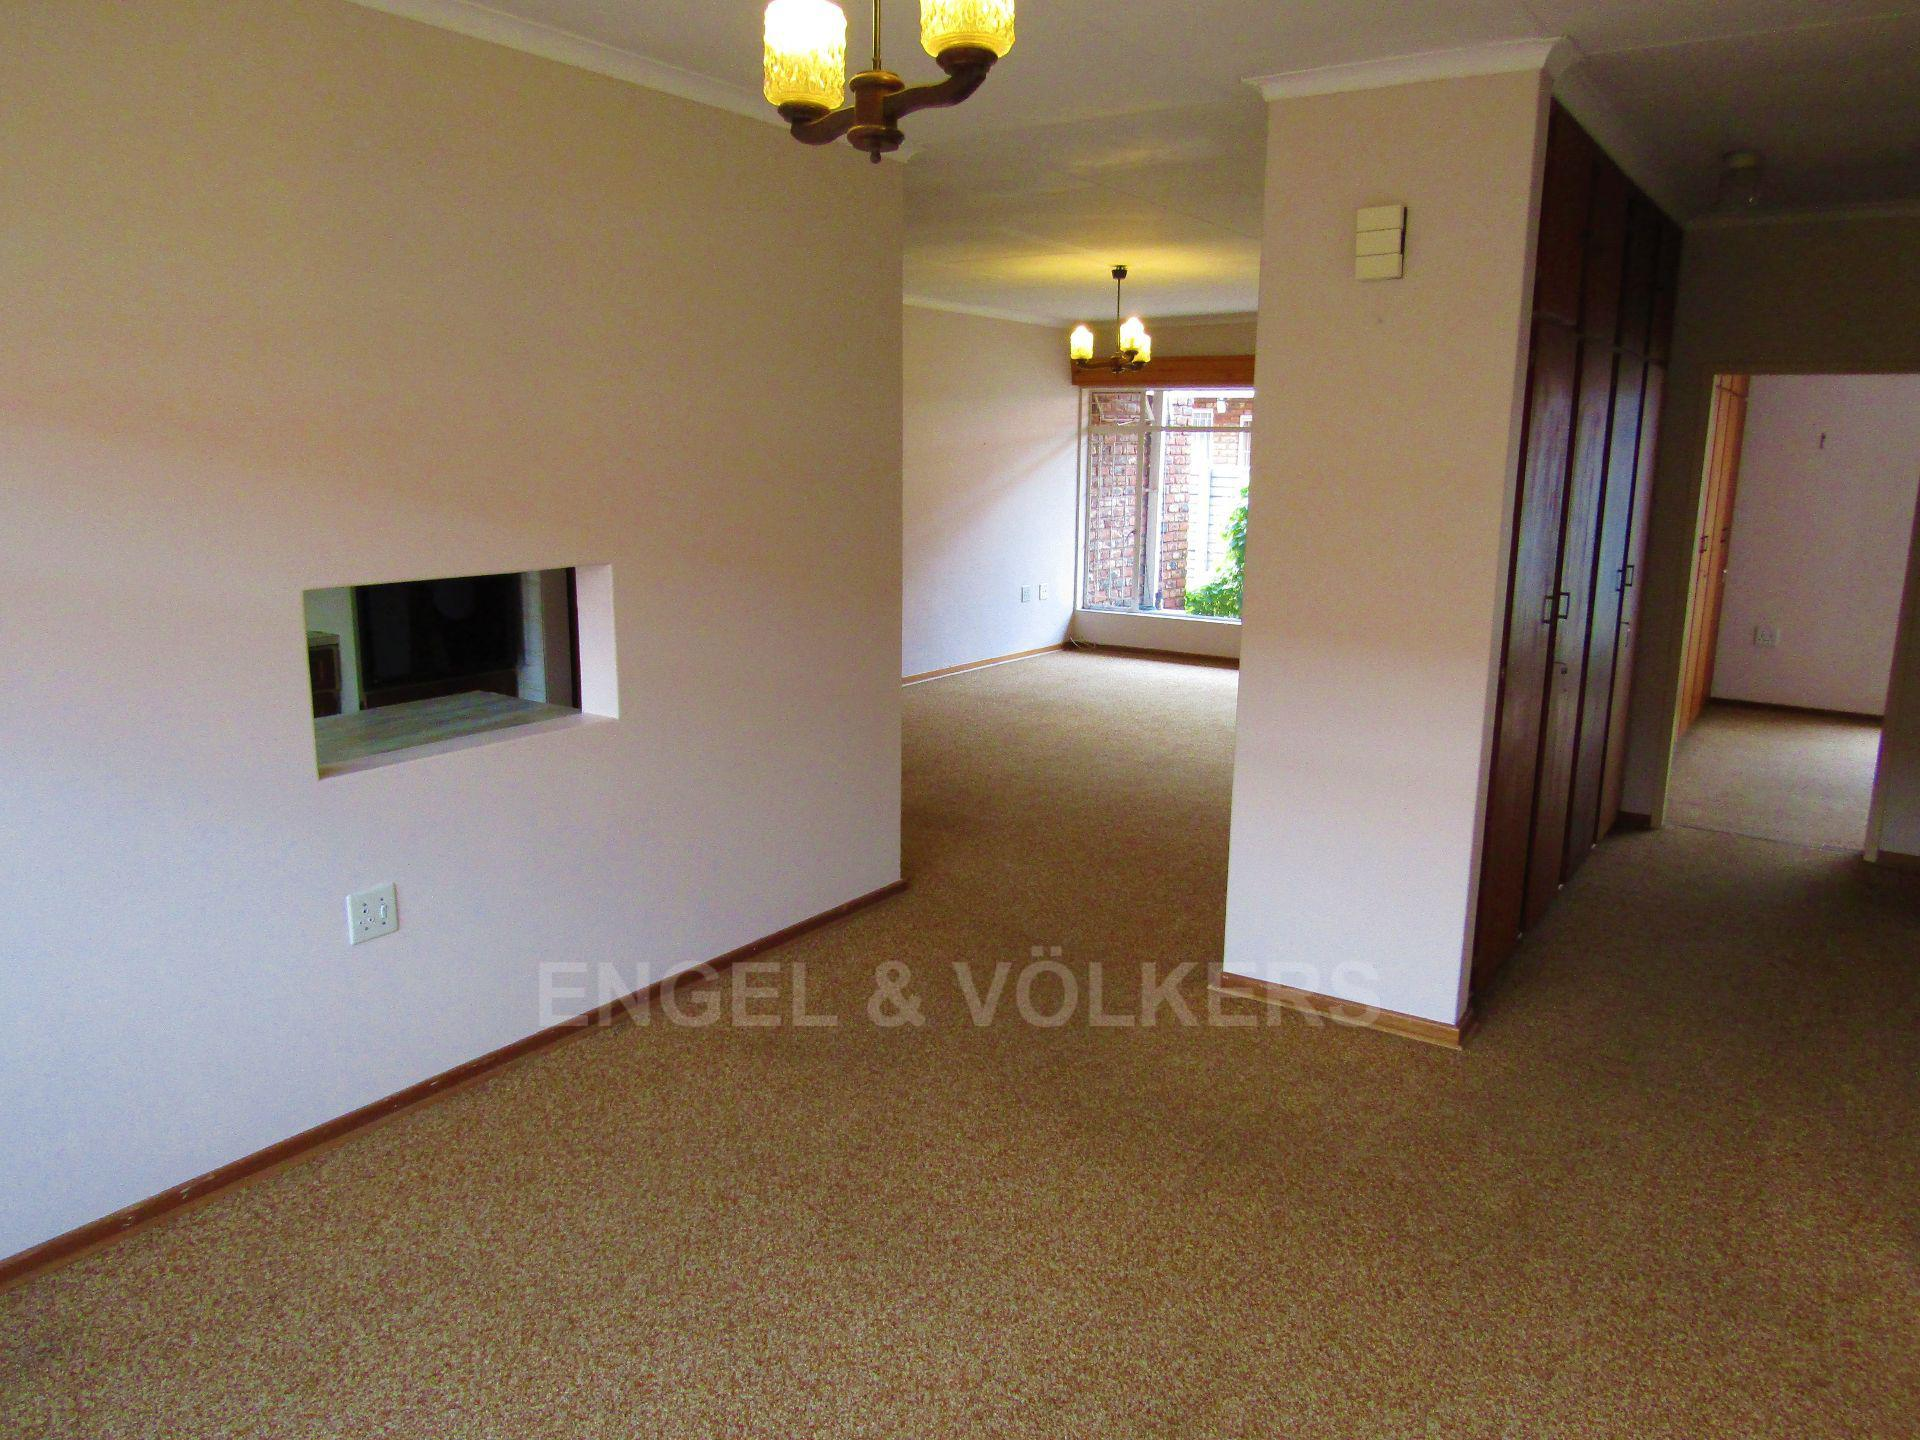 Potchefstroom Central property for sale. Ref No: 13459099. Picture no 8